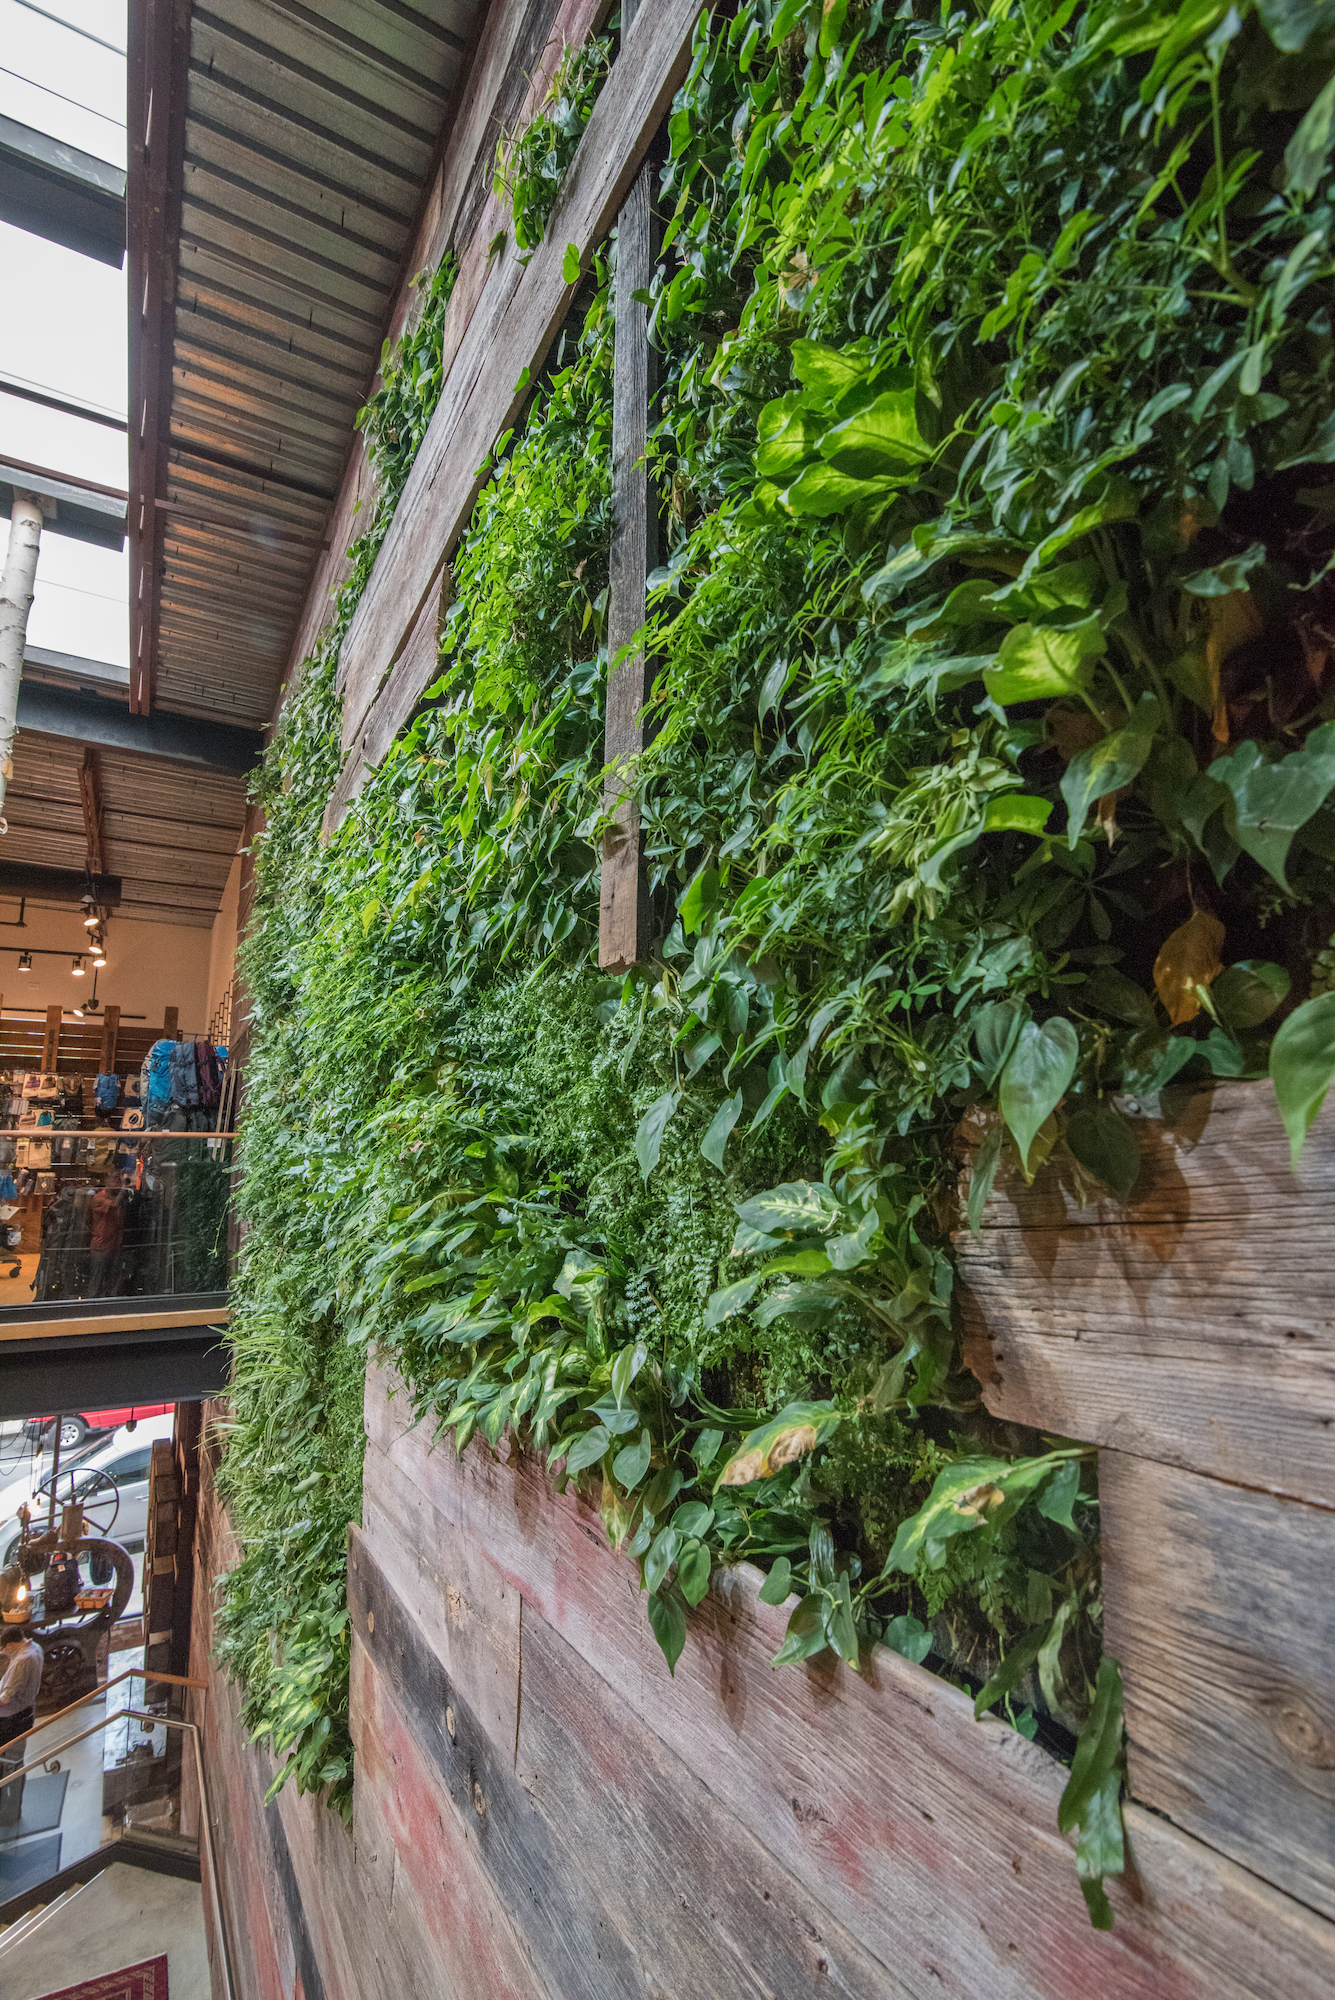 Live wall featuring plants at Denali in Providence, Rhode Island, with red board sourced by Rousseau Reclaimed Lumber & Flooring